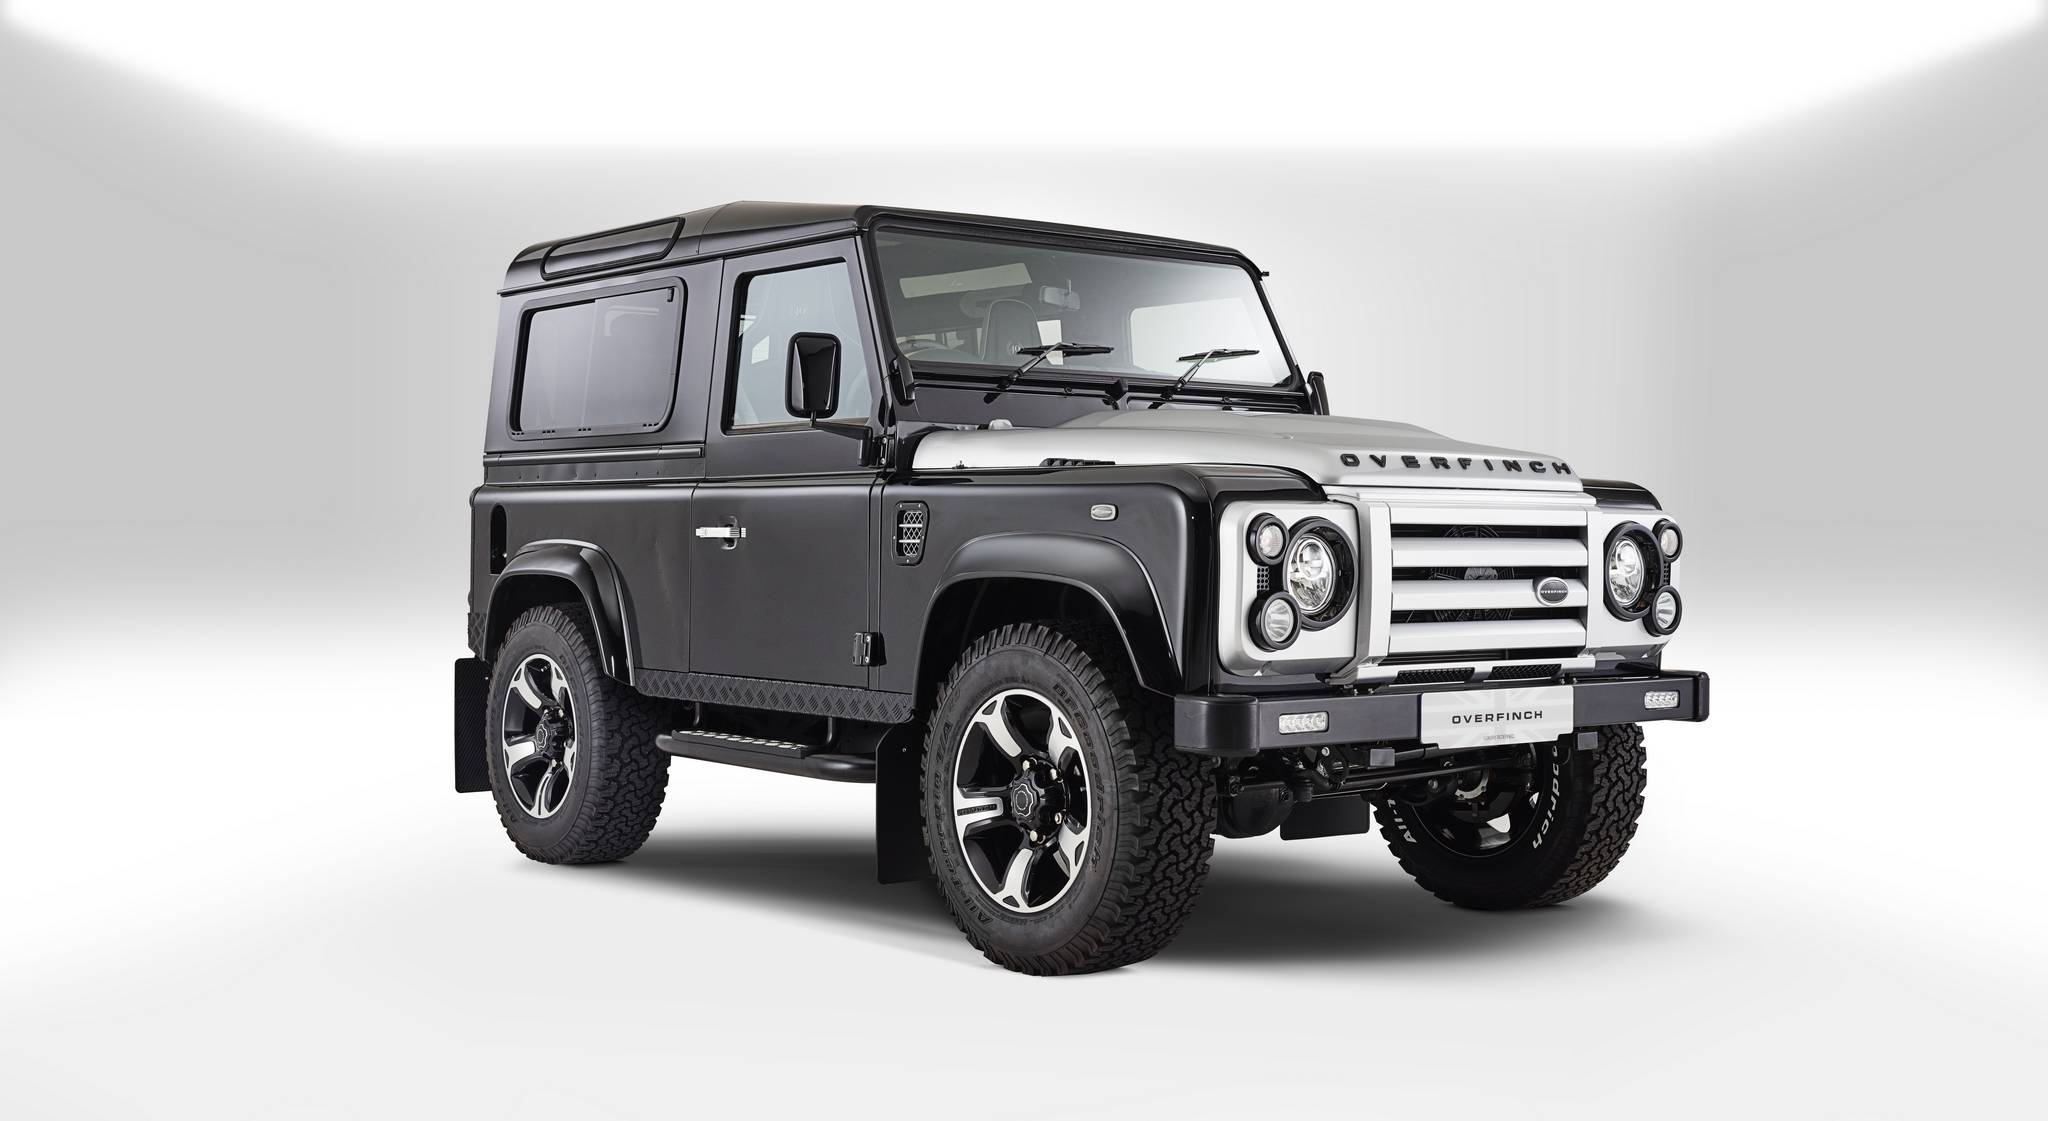 official overfinch land rover defender 40th anniversary edition gtspirit. Black Bedroom Furniture Sets. Home Design Ideas